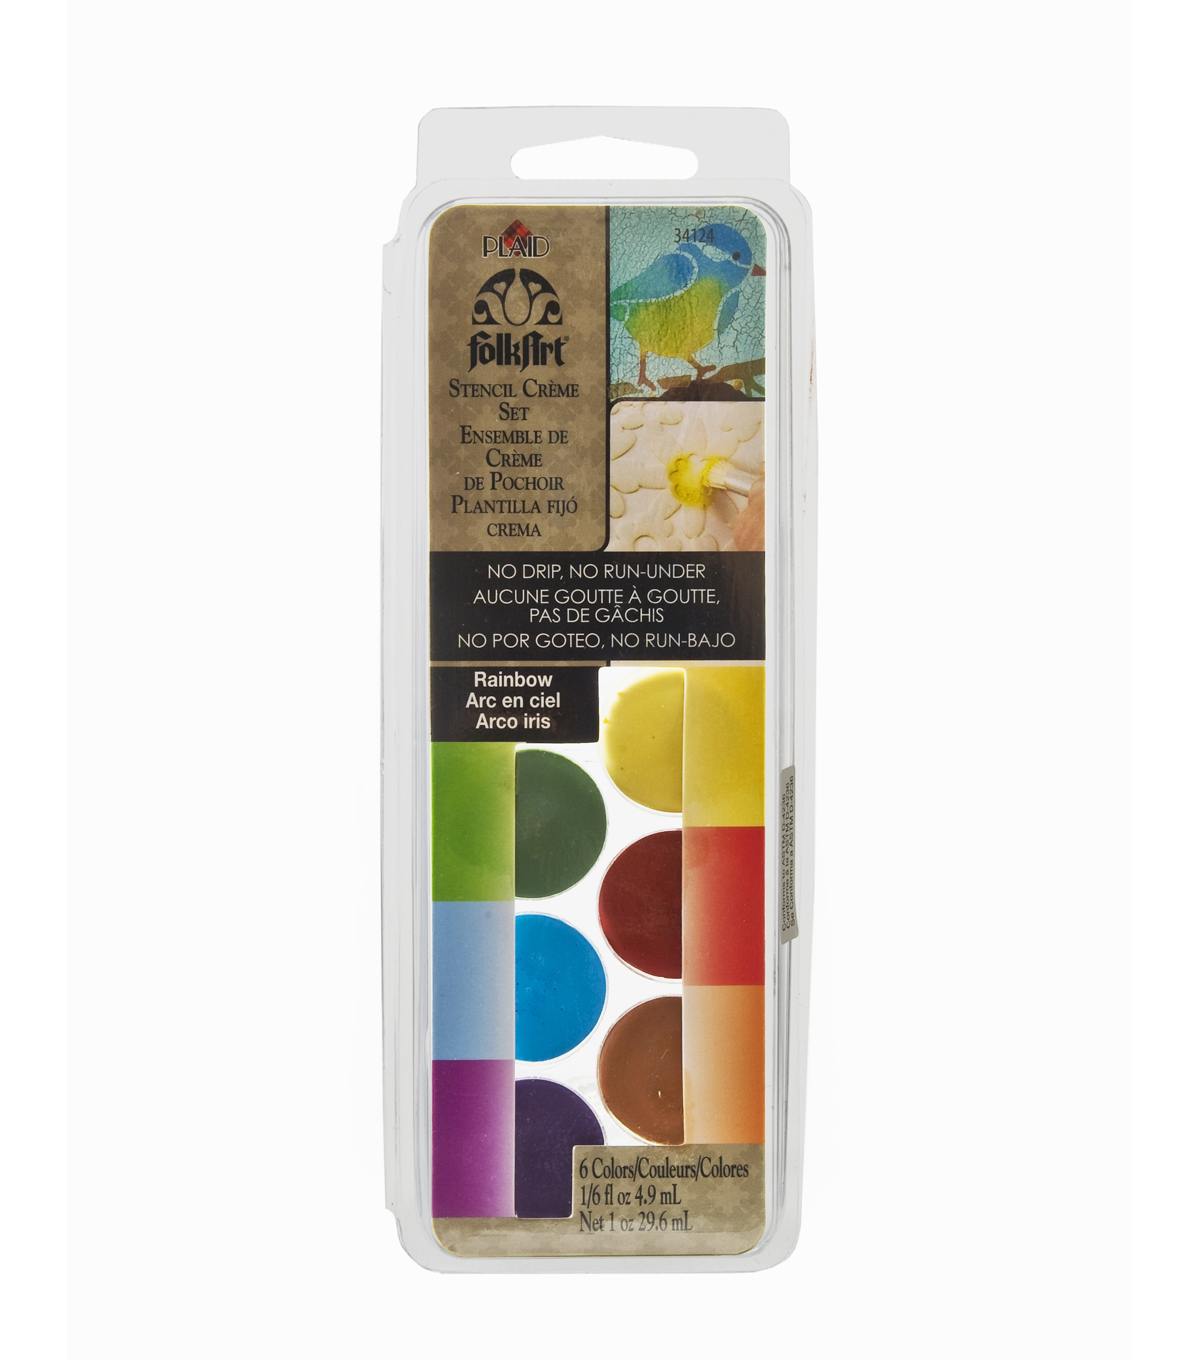 FolkArt Dry Brush Stencil Creme Set-Rainbow